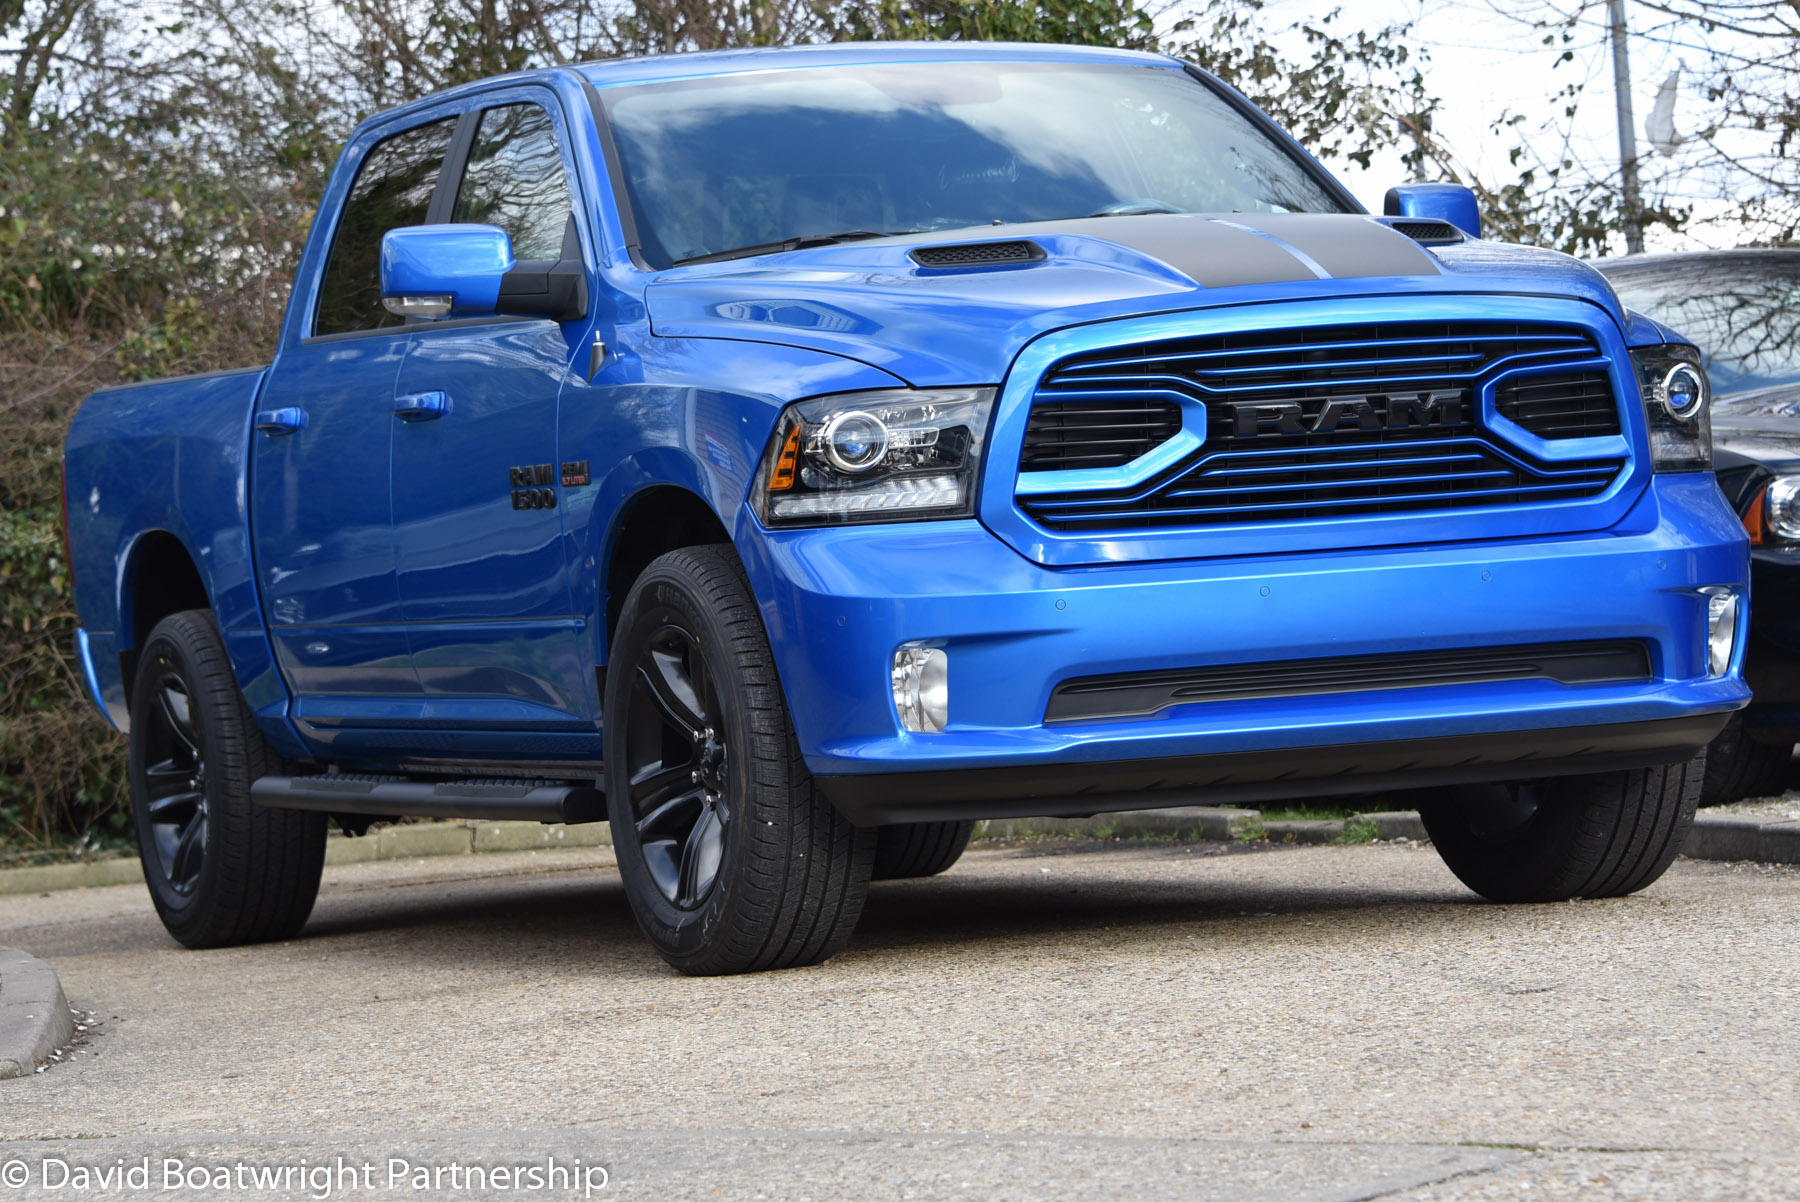 Dodge Ram Ford F150 Ford Mustang American Vehicles